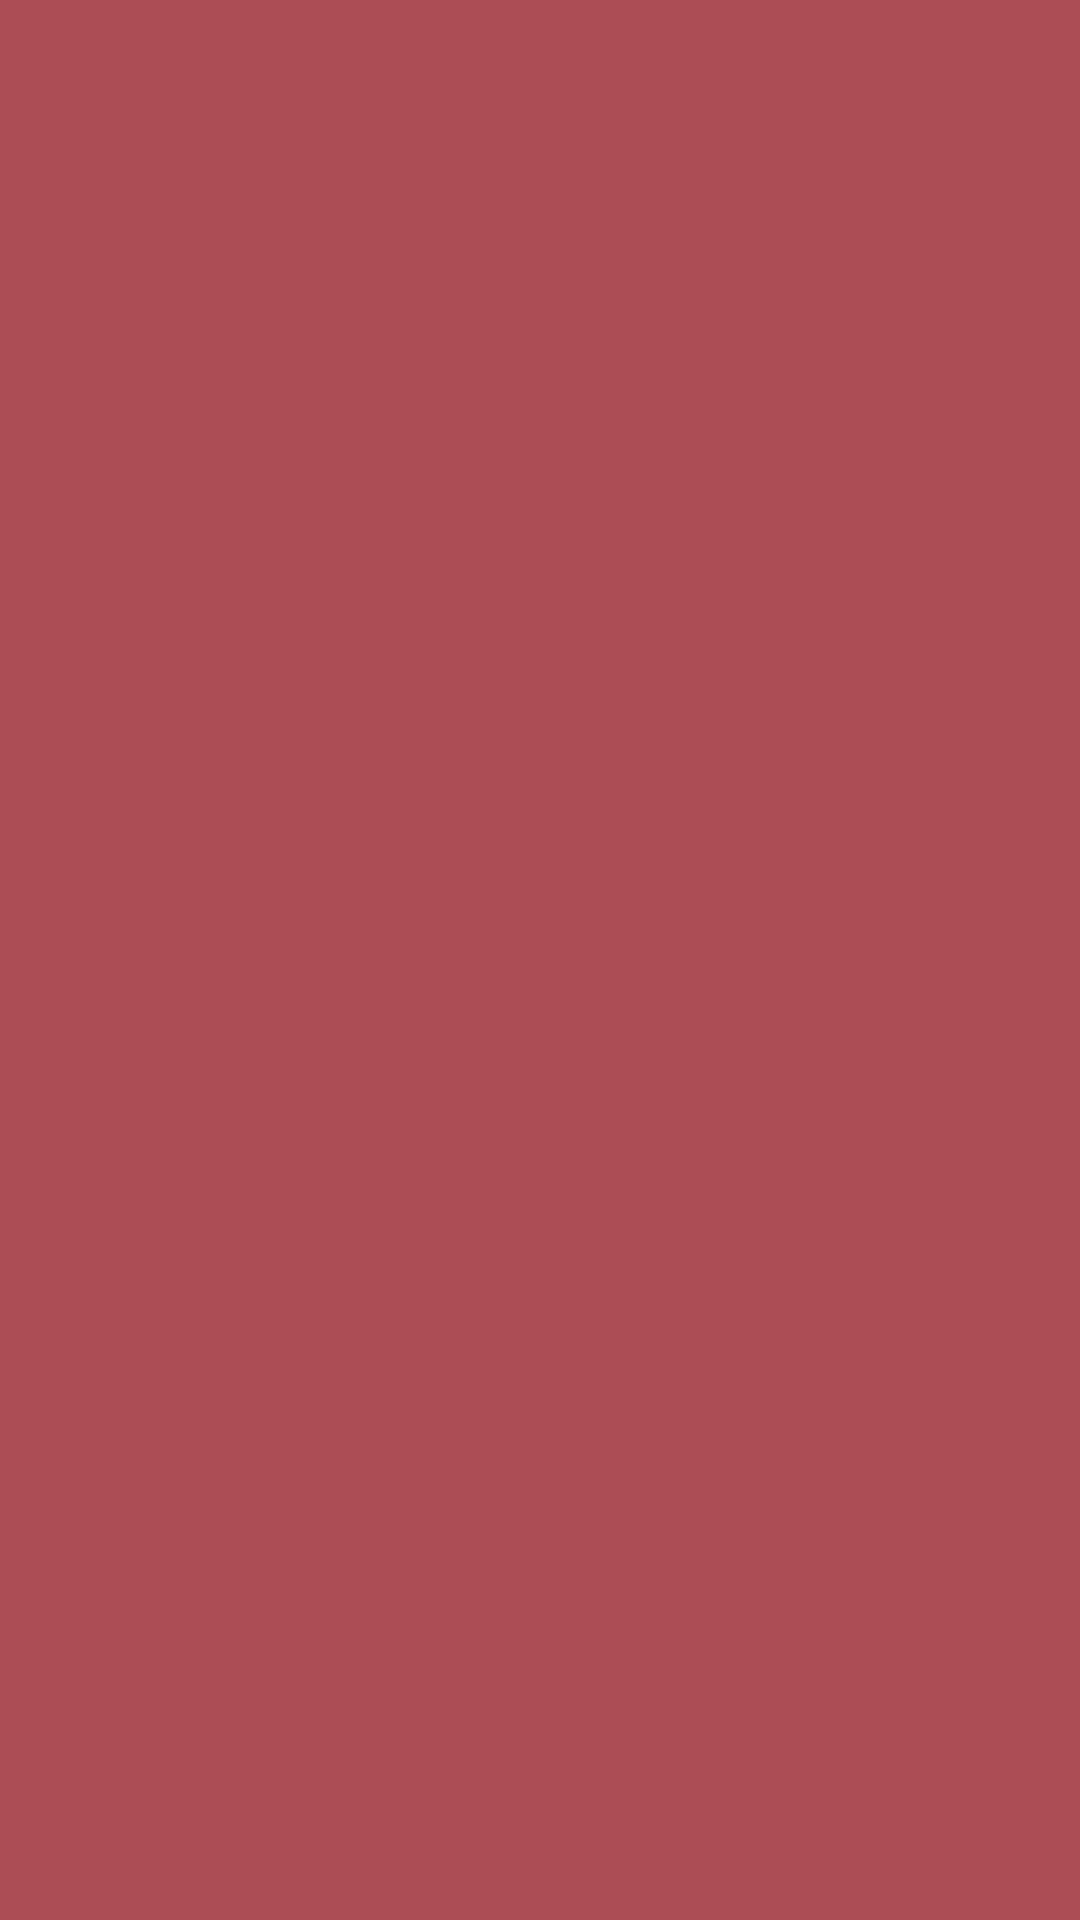 1080x1920 English Red Solid Color Background